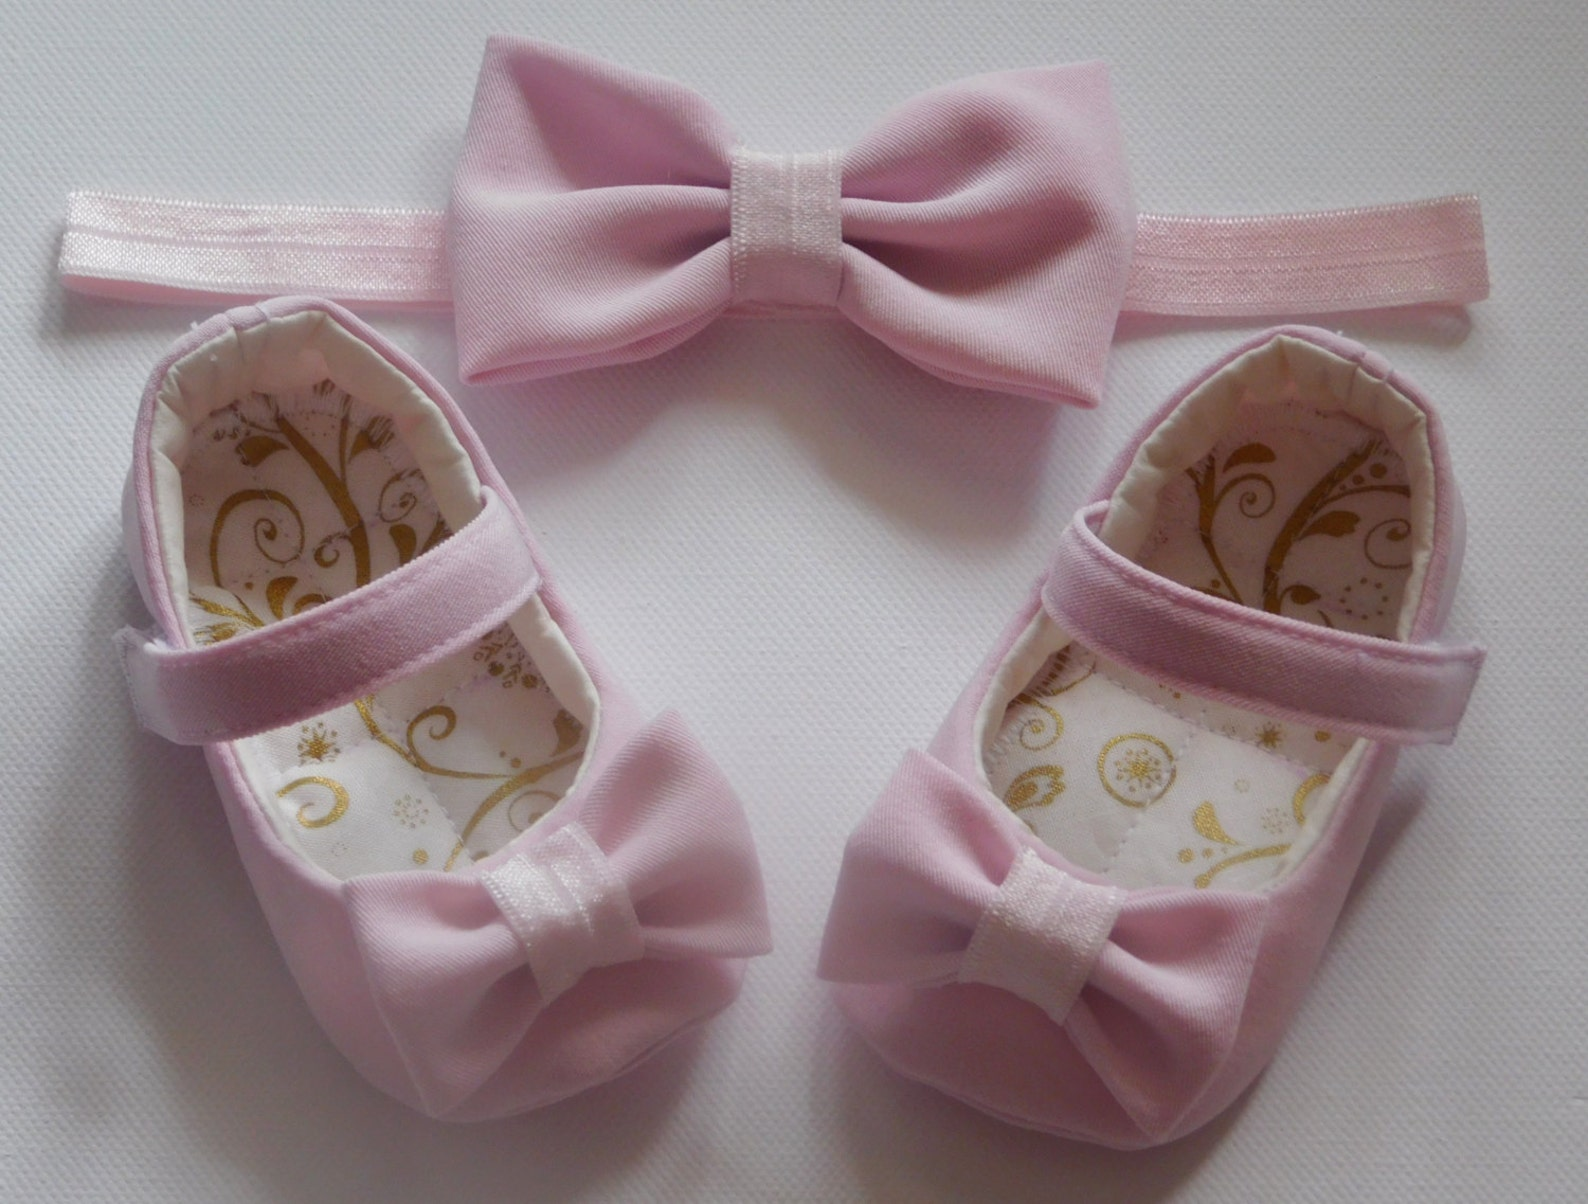 baby girl shoes flower girl shoes baby shower baby gift ballet slipper toddler wedding shoes ballet flats dance shoes pink shoes